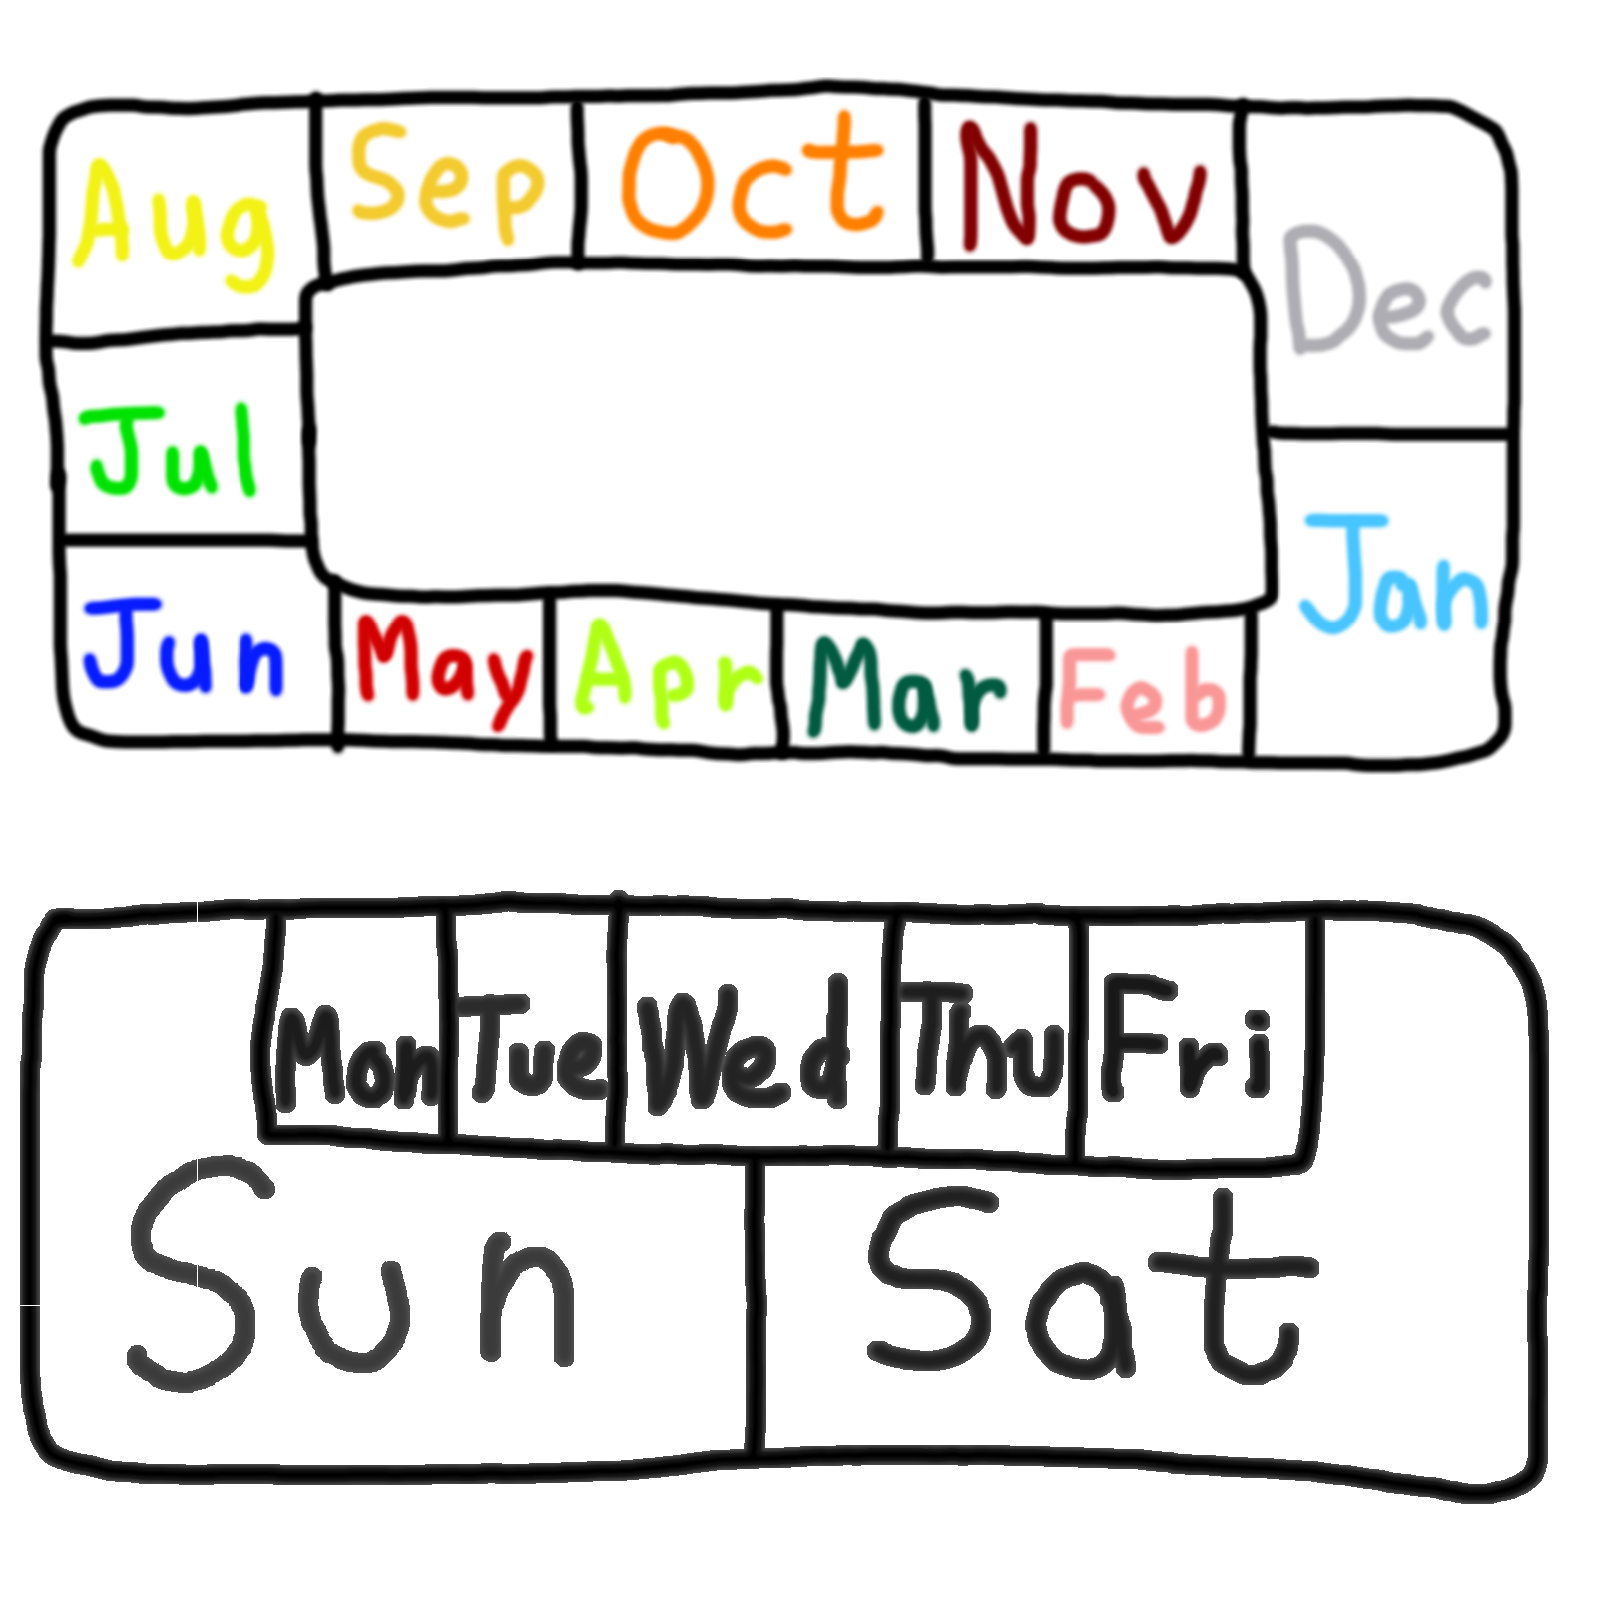 Year Calendar Days : File months of the year and days week